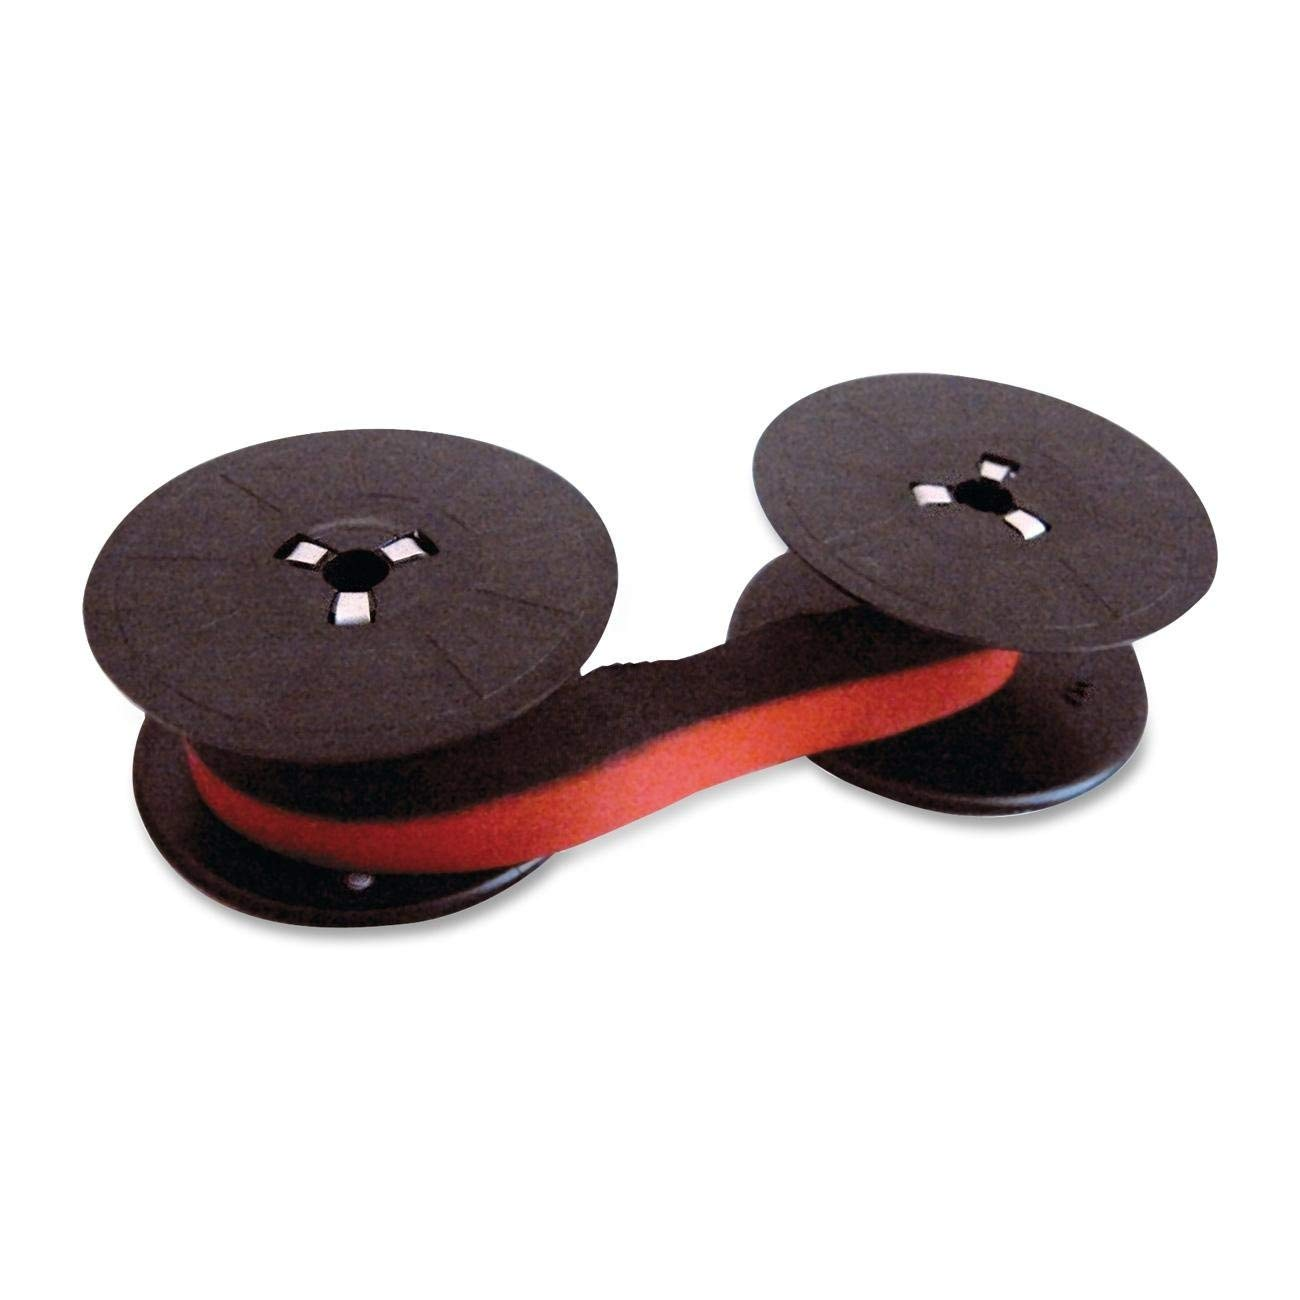 Compatible Universal Calculator Spool EPC B / R Black and Red Ribbons, Works for Nasco NS-1425 PD, Nasco NS-148 PD, Nasco NS-202 PD, Nasco NS-212 PD